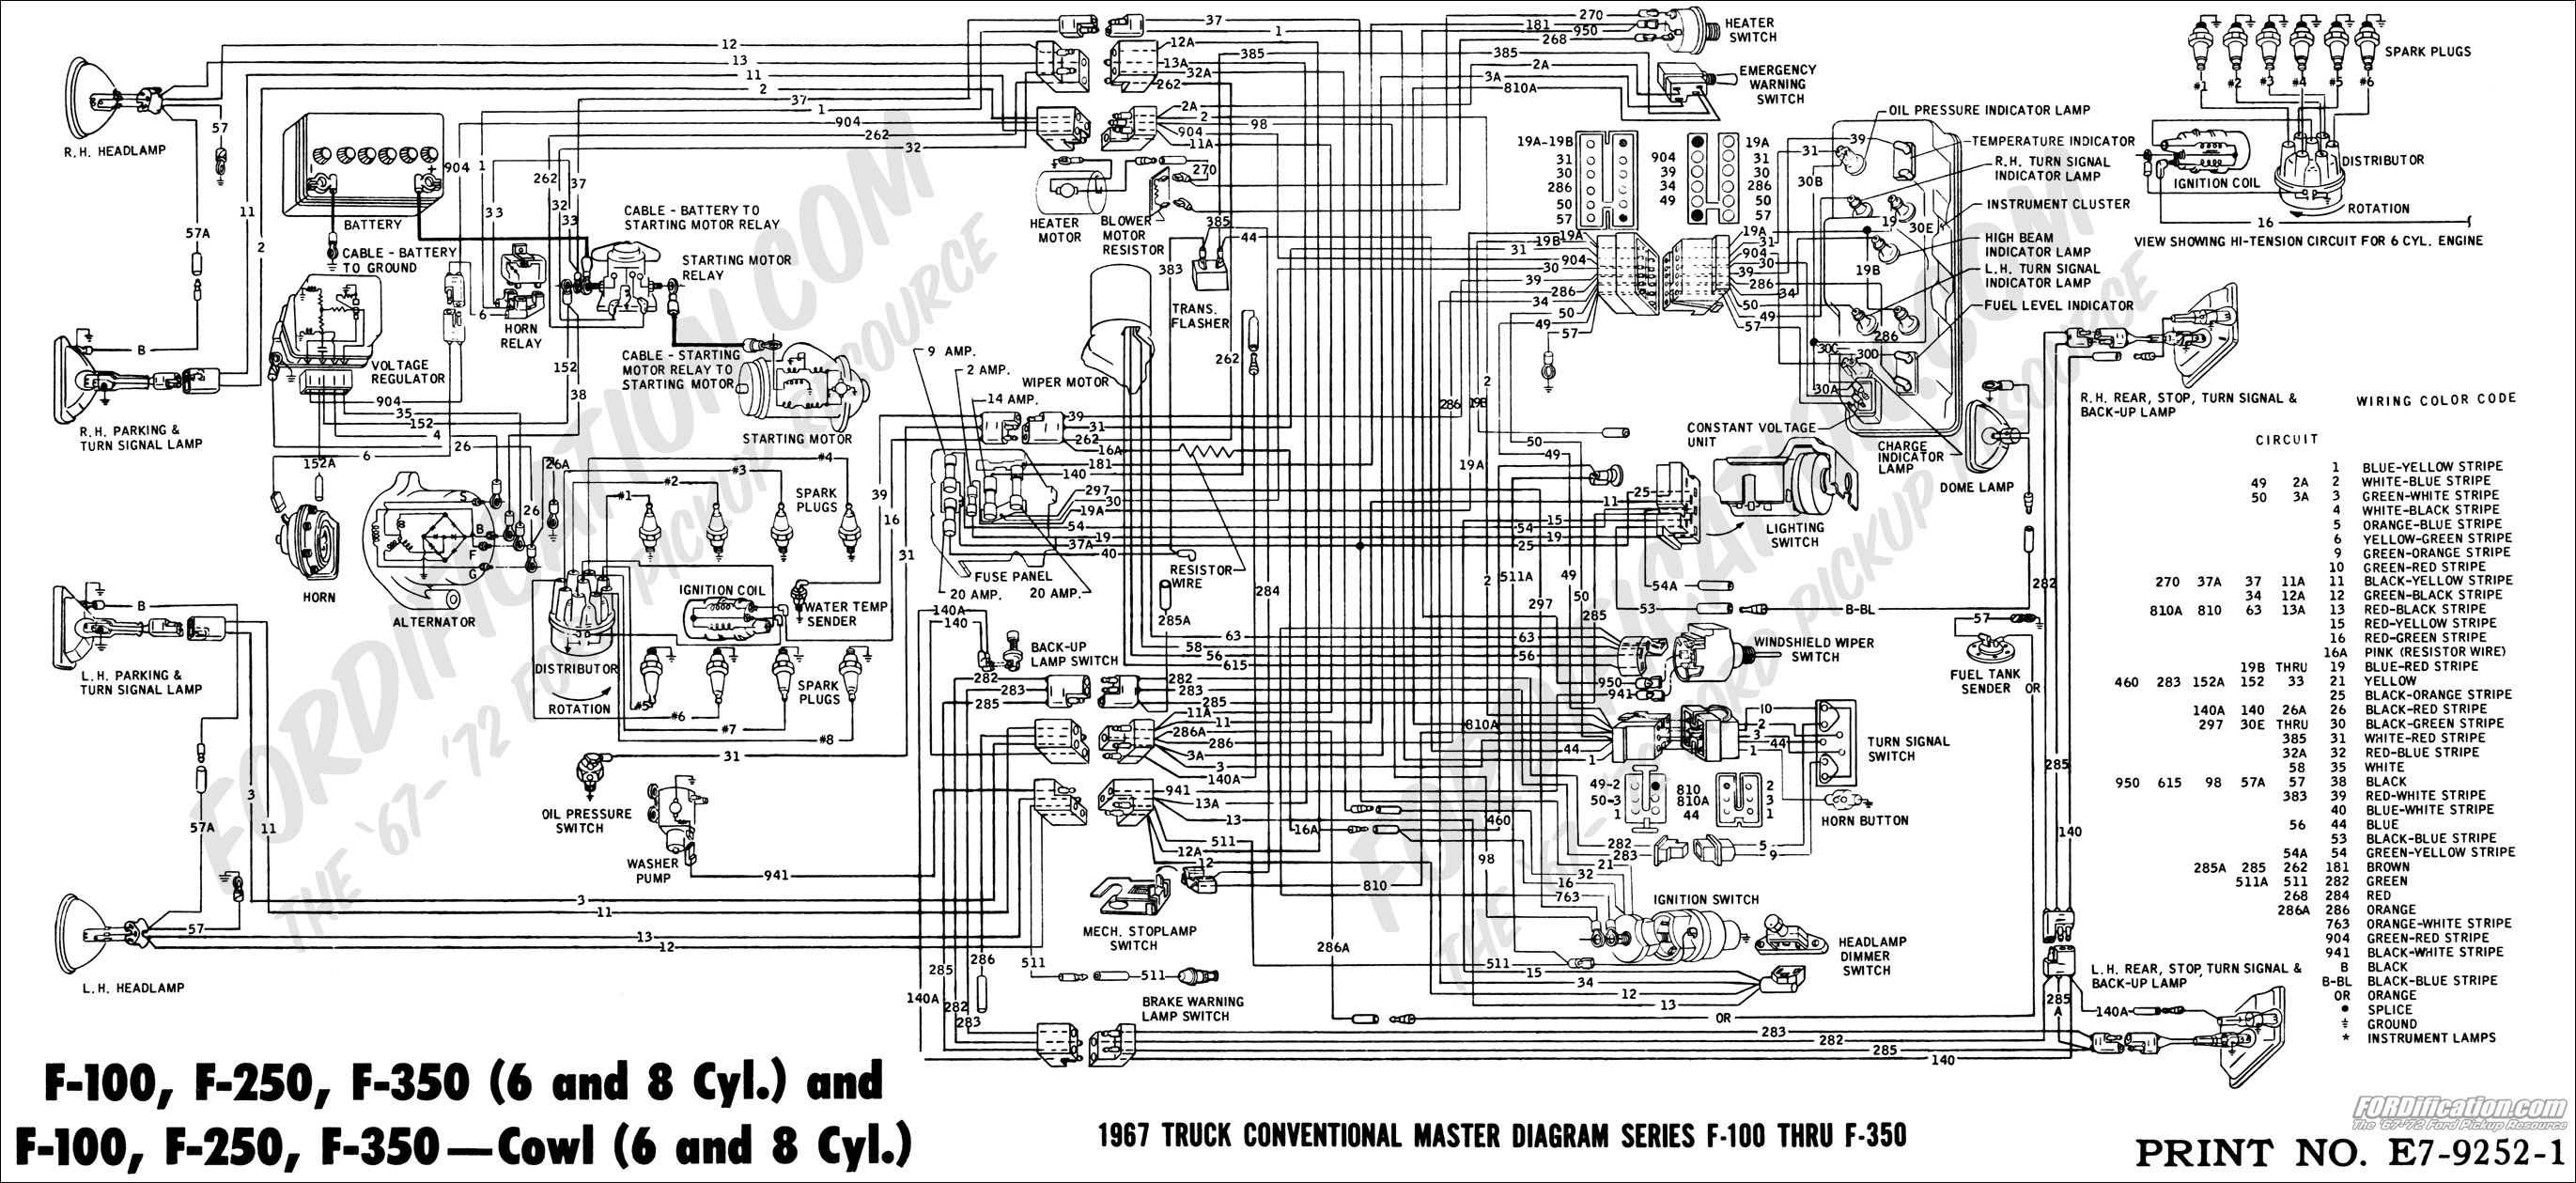 99 f150 wiring diagram wiring diagrams clicks rh 10 qqq liquid cactus de Ford Voltage Regulator Diagram Ford Alternator Diagram